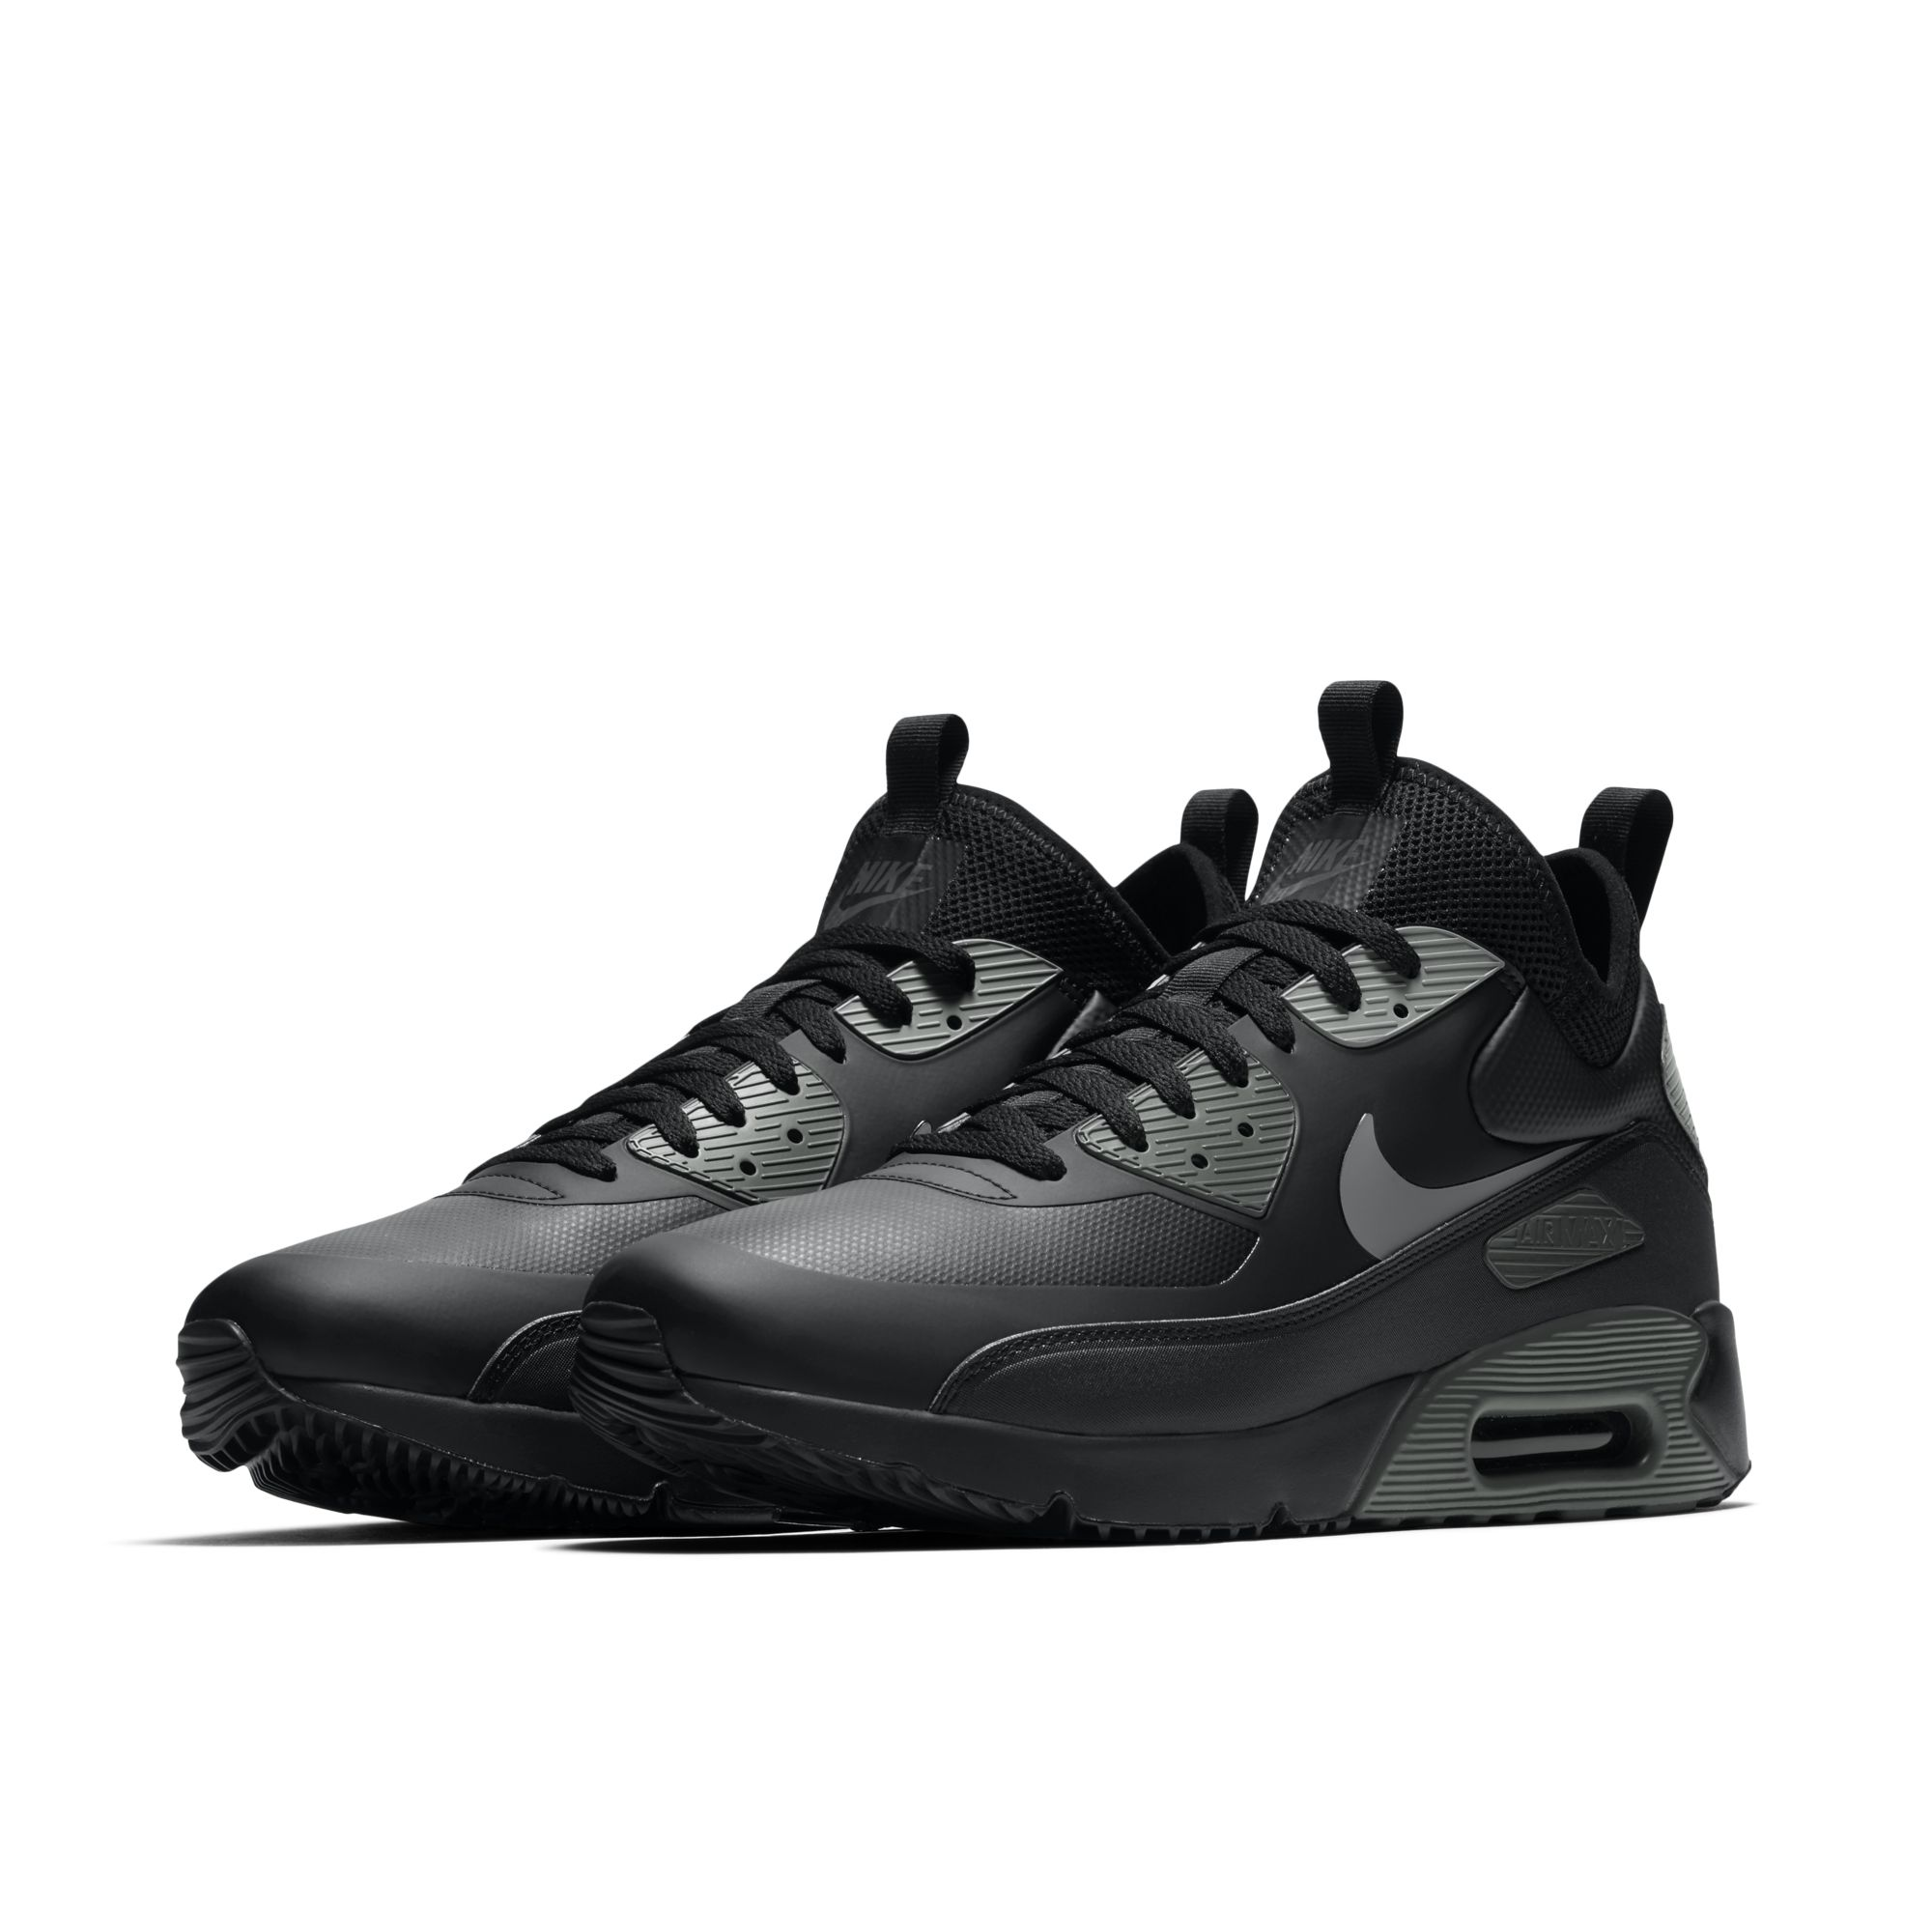 brand new 7ce5e eab8a These Nike Air Max 90 Ultra Mids Get Ready for Winter ...